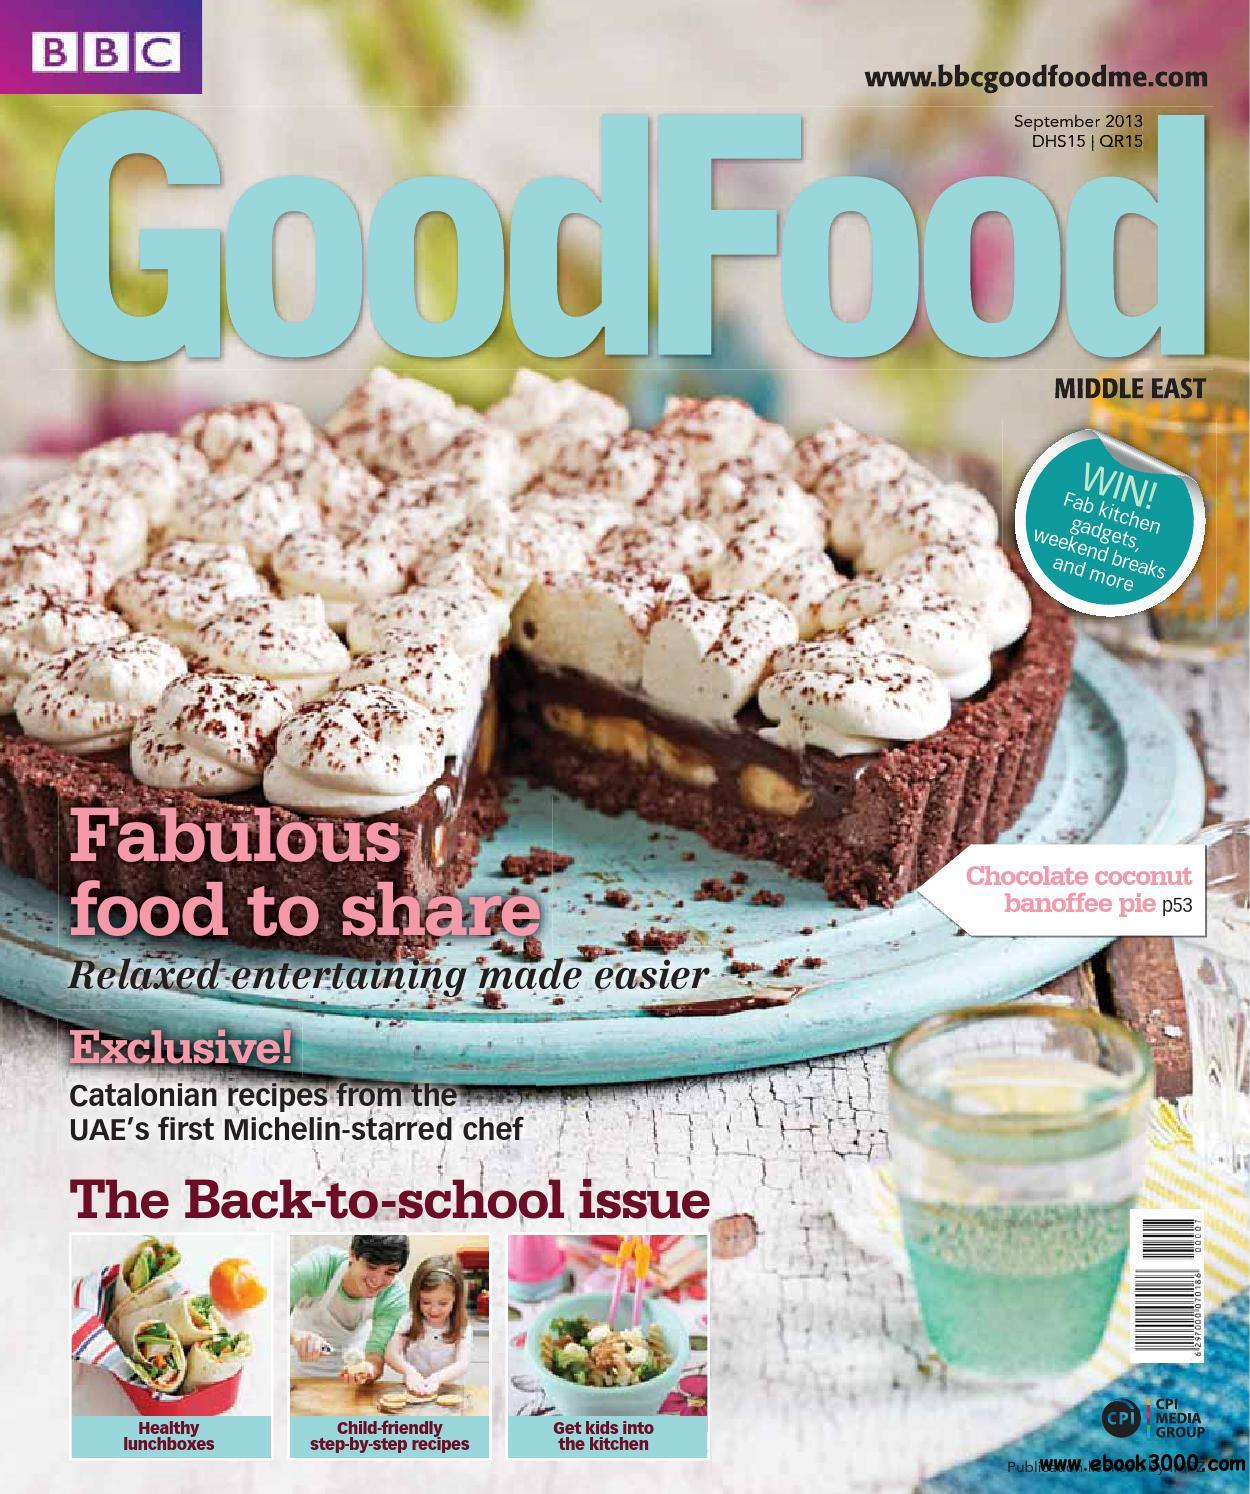 BBC Good Food Middle East - September 2013 free download